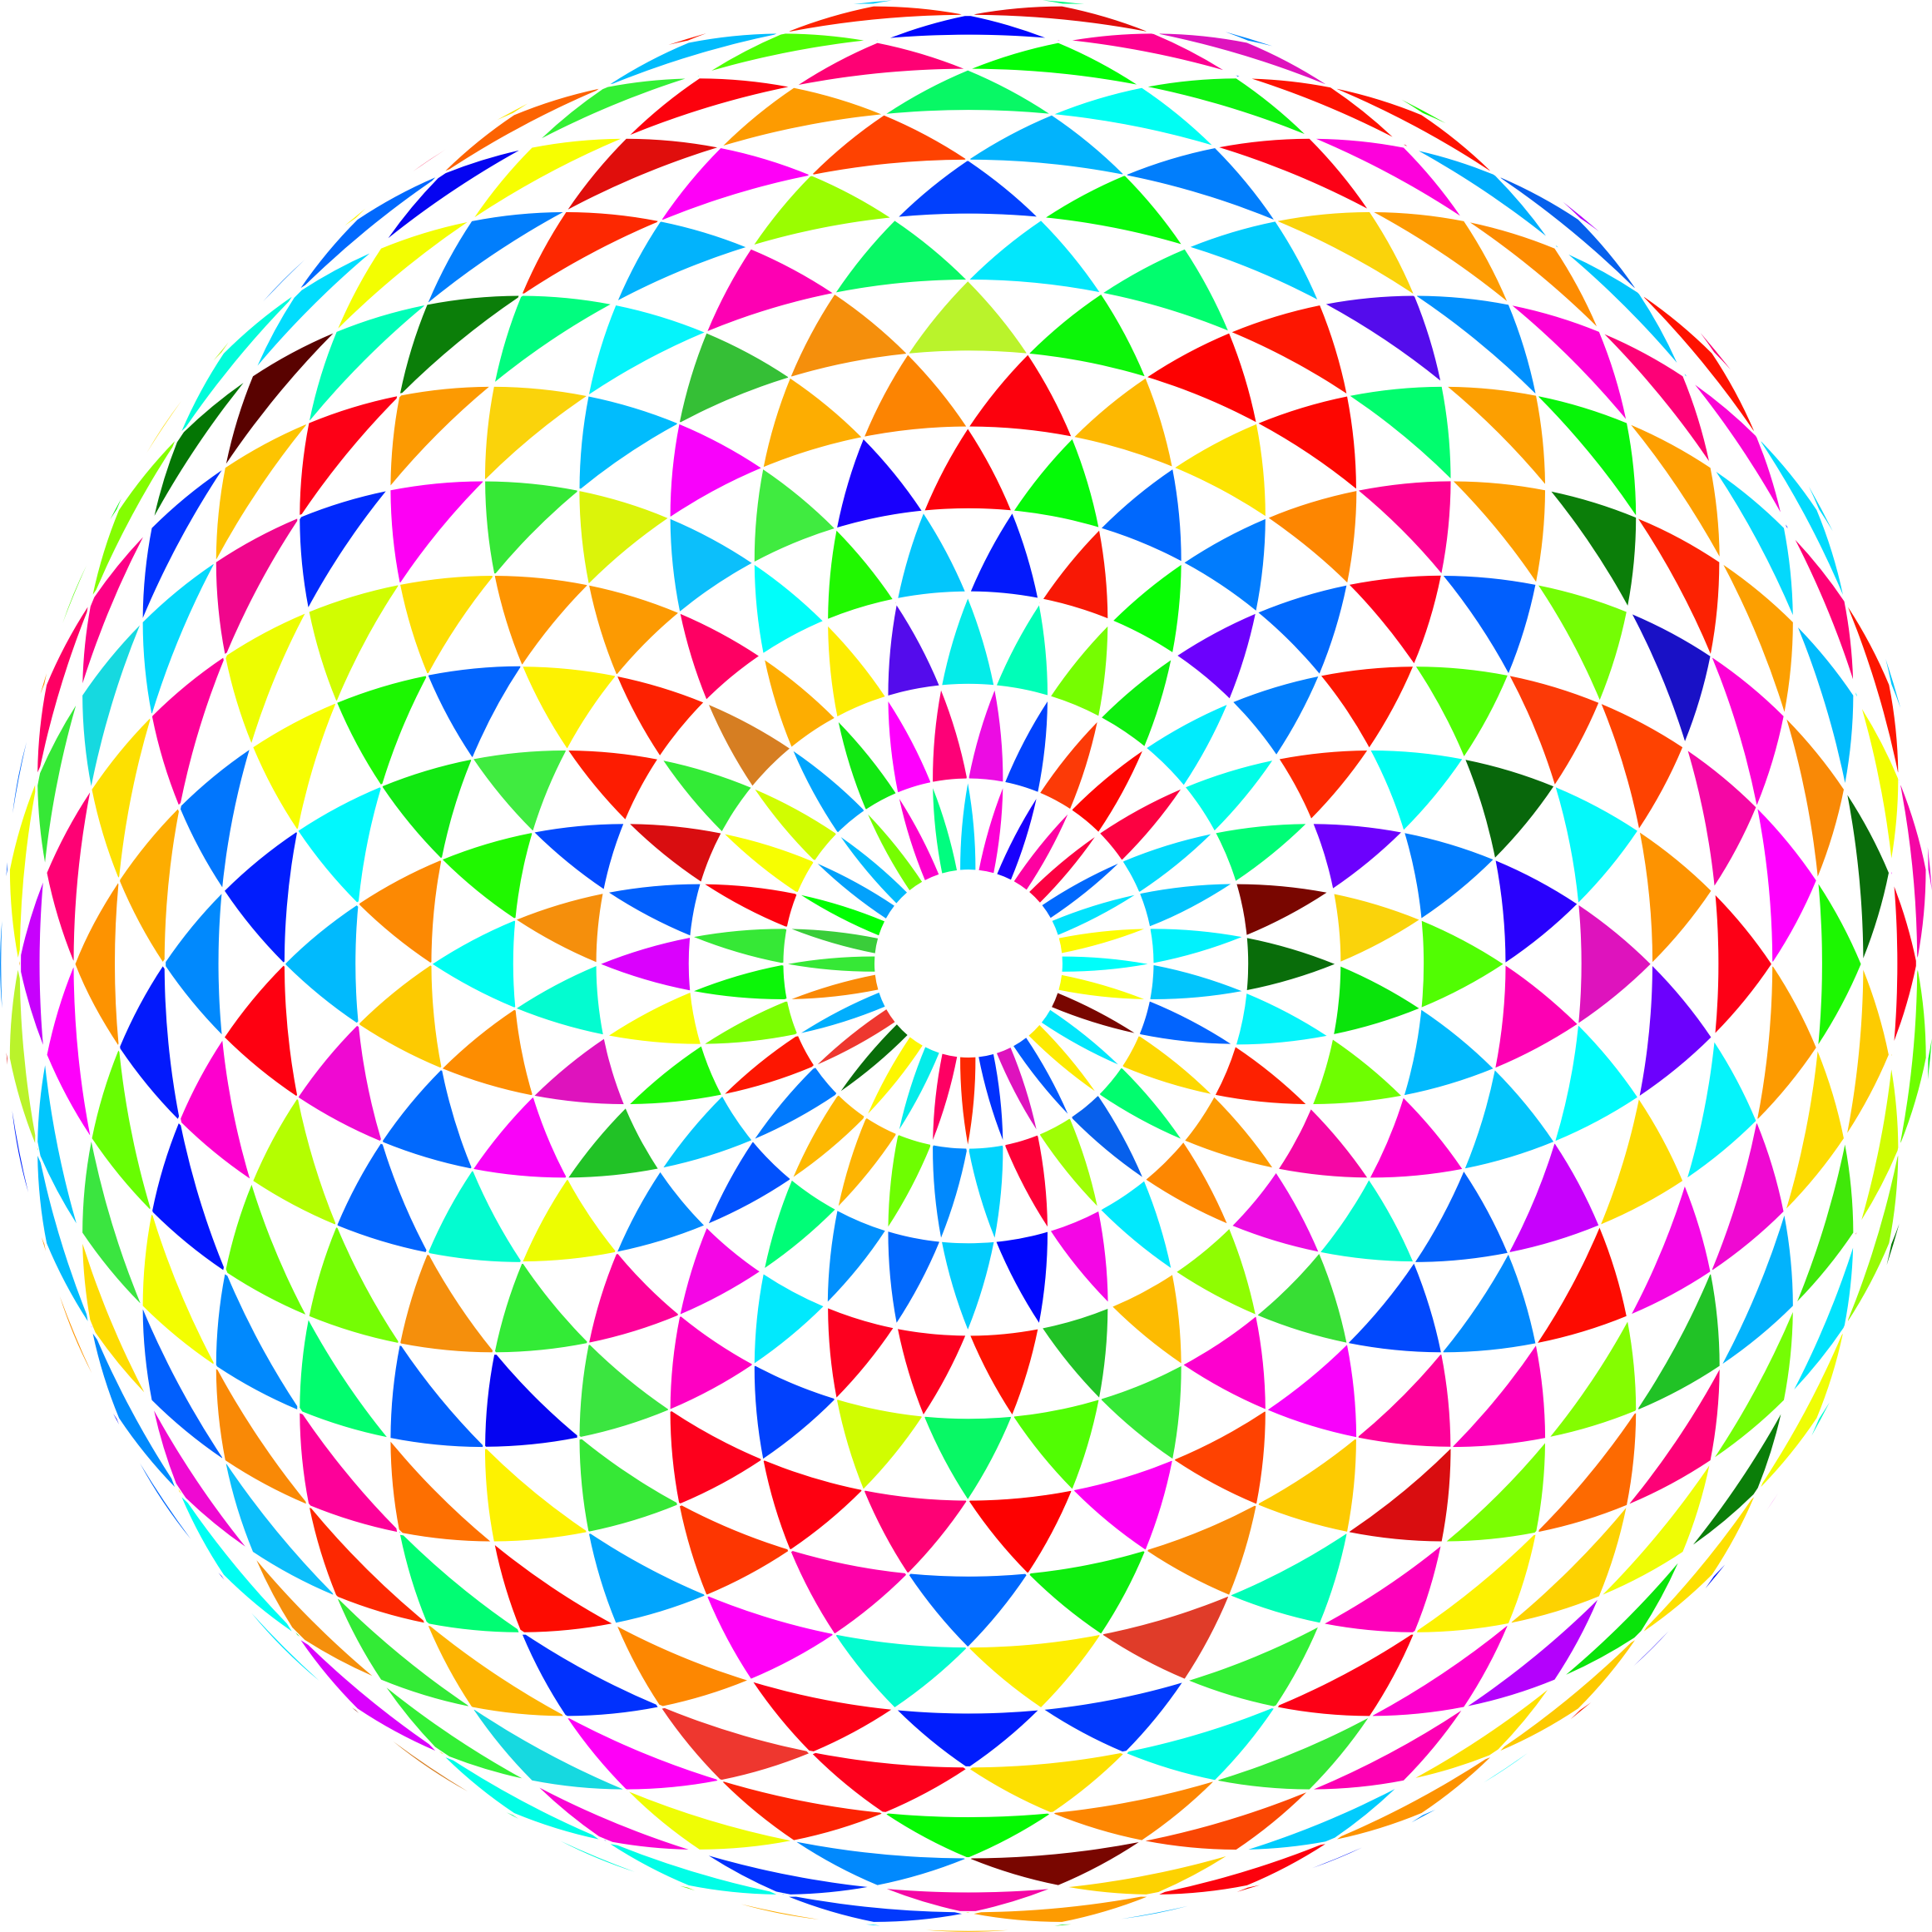 Colorful Toroid Mandala 2 by GDJ